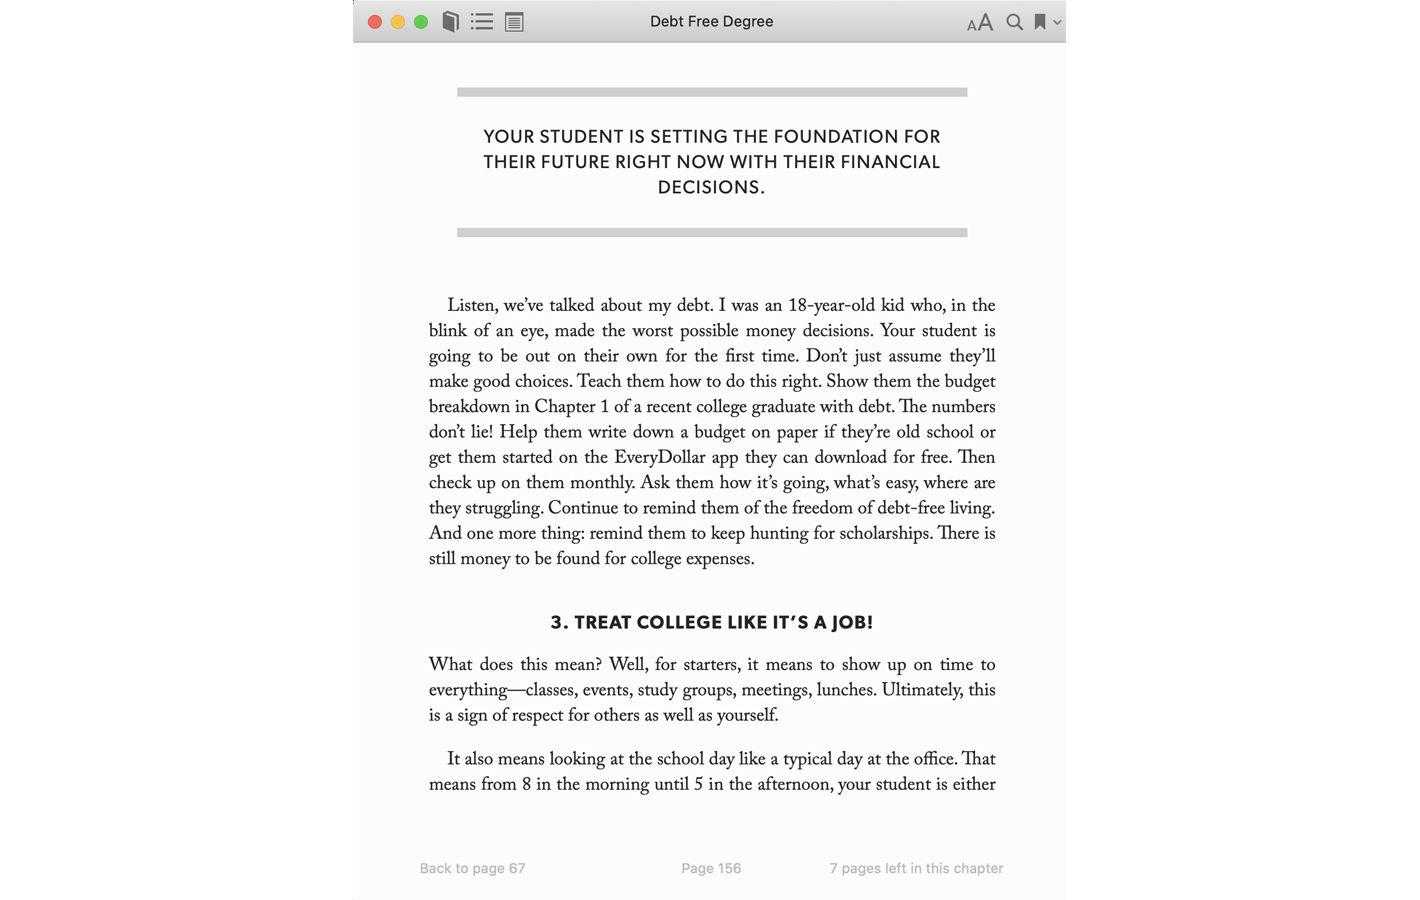 Page 156 for Debt Free Degree book